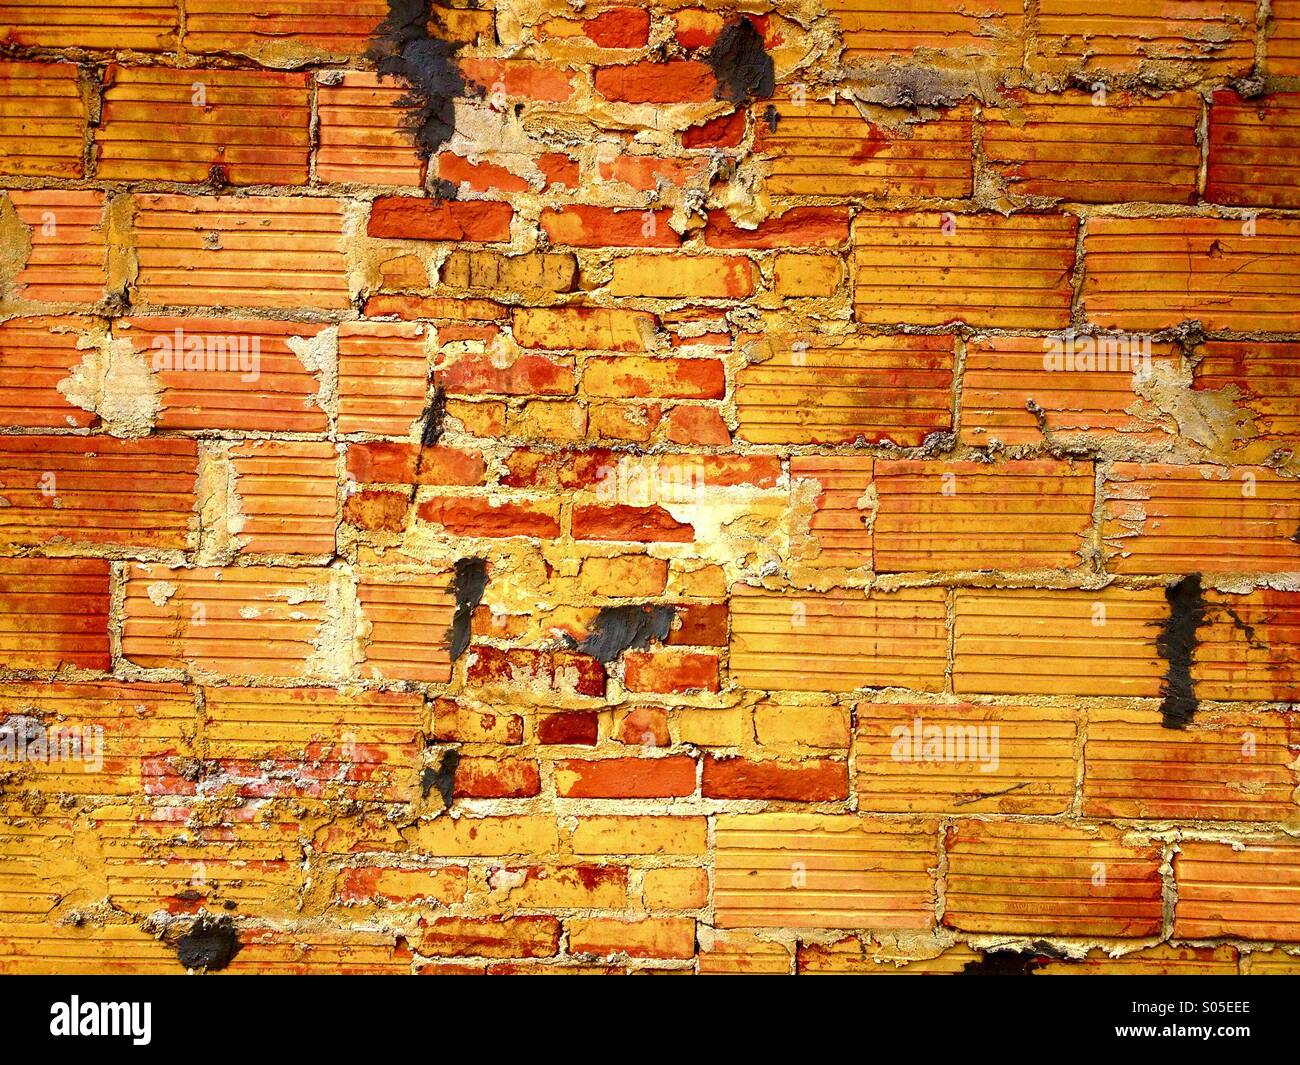 Detail of a colorful orange and yellow brick wall that has been repaired with odd shaped brick on the outside of - Stock Image